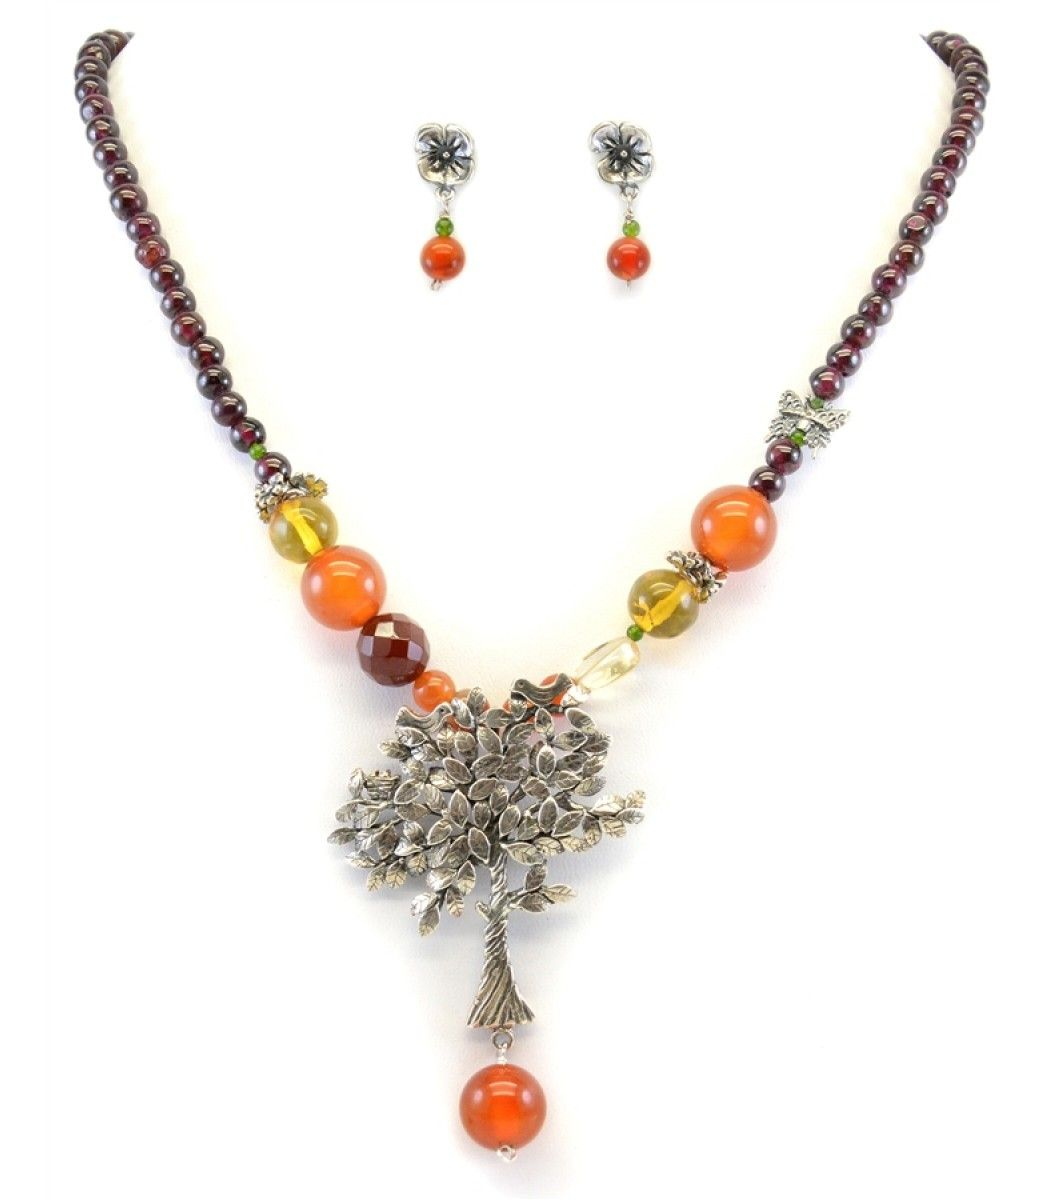 Tree of prosperity necklace and earrings set necklaces pinterest